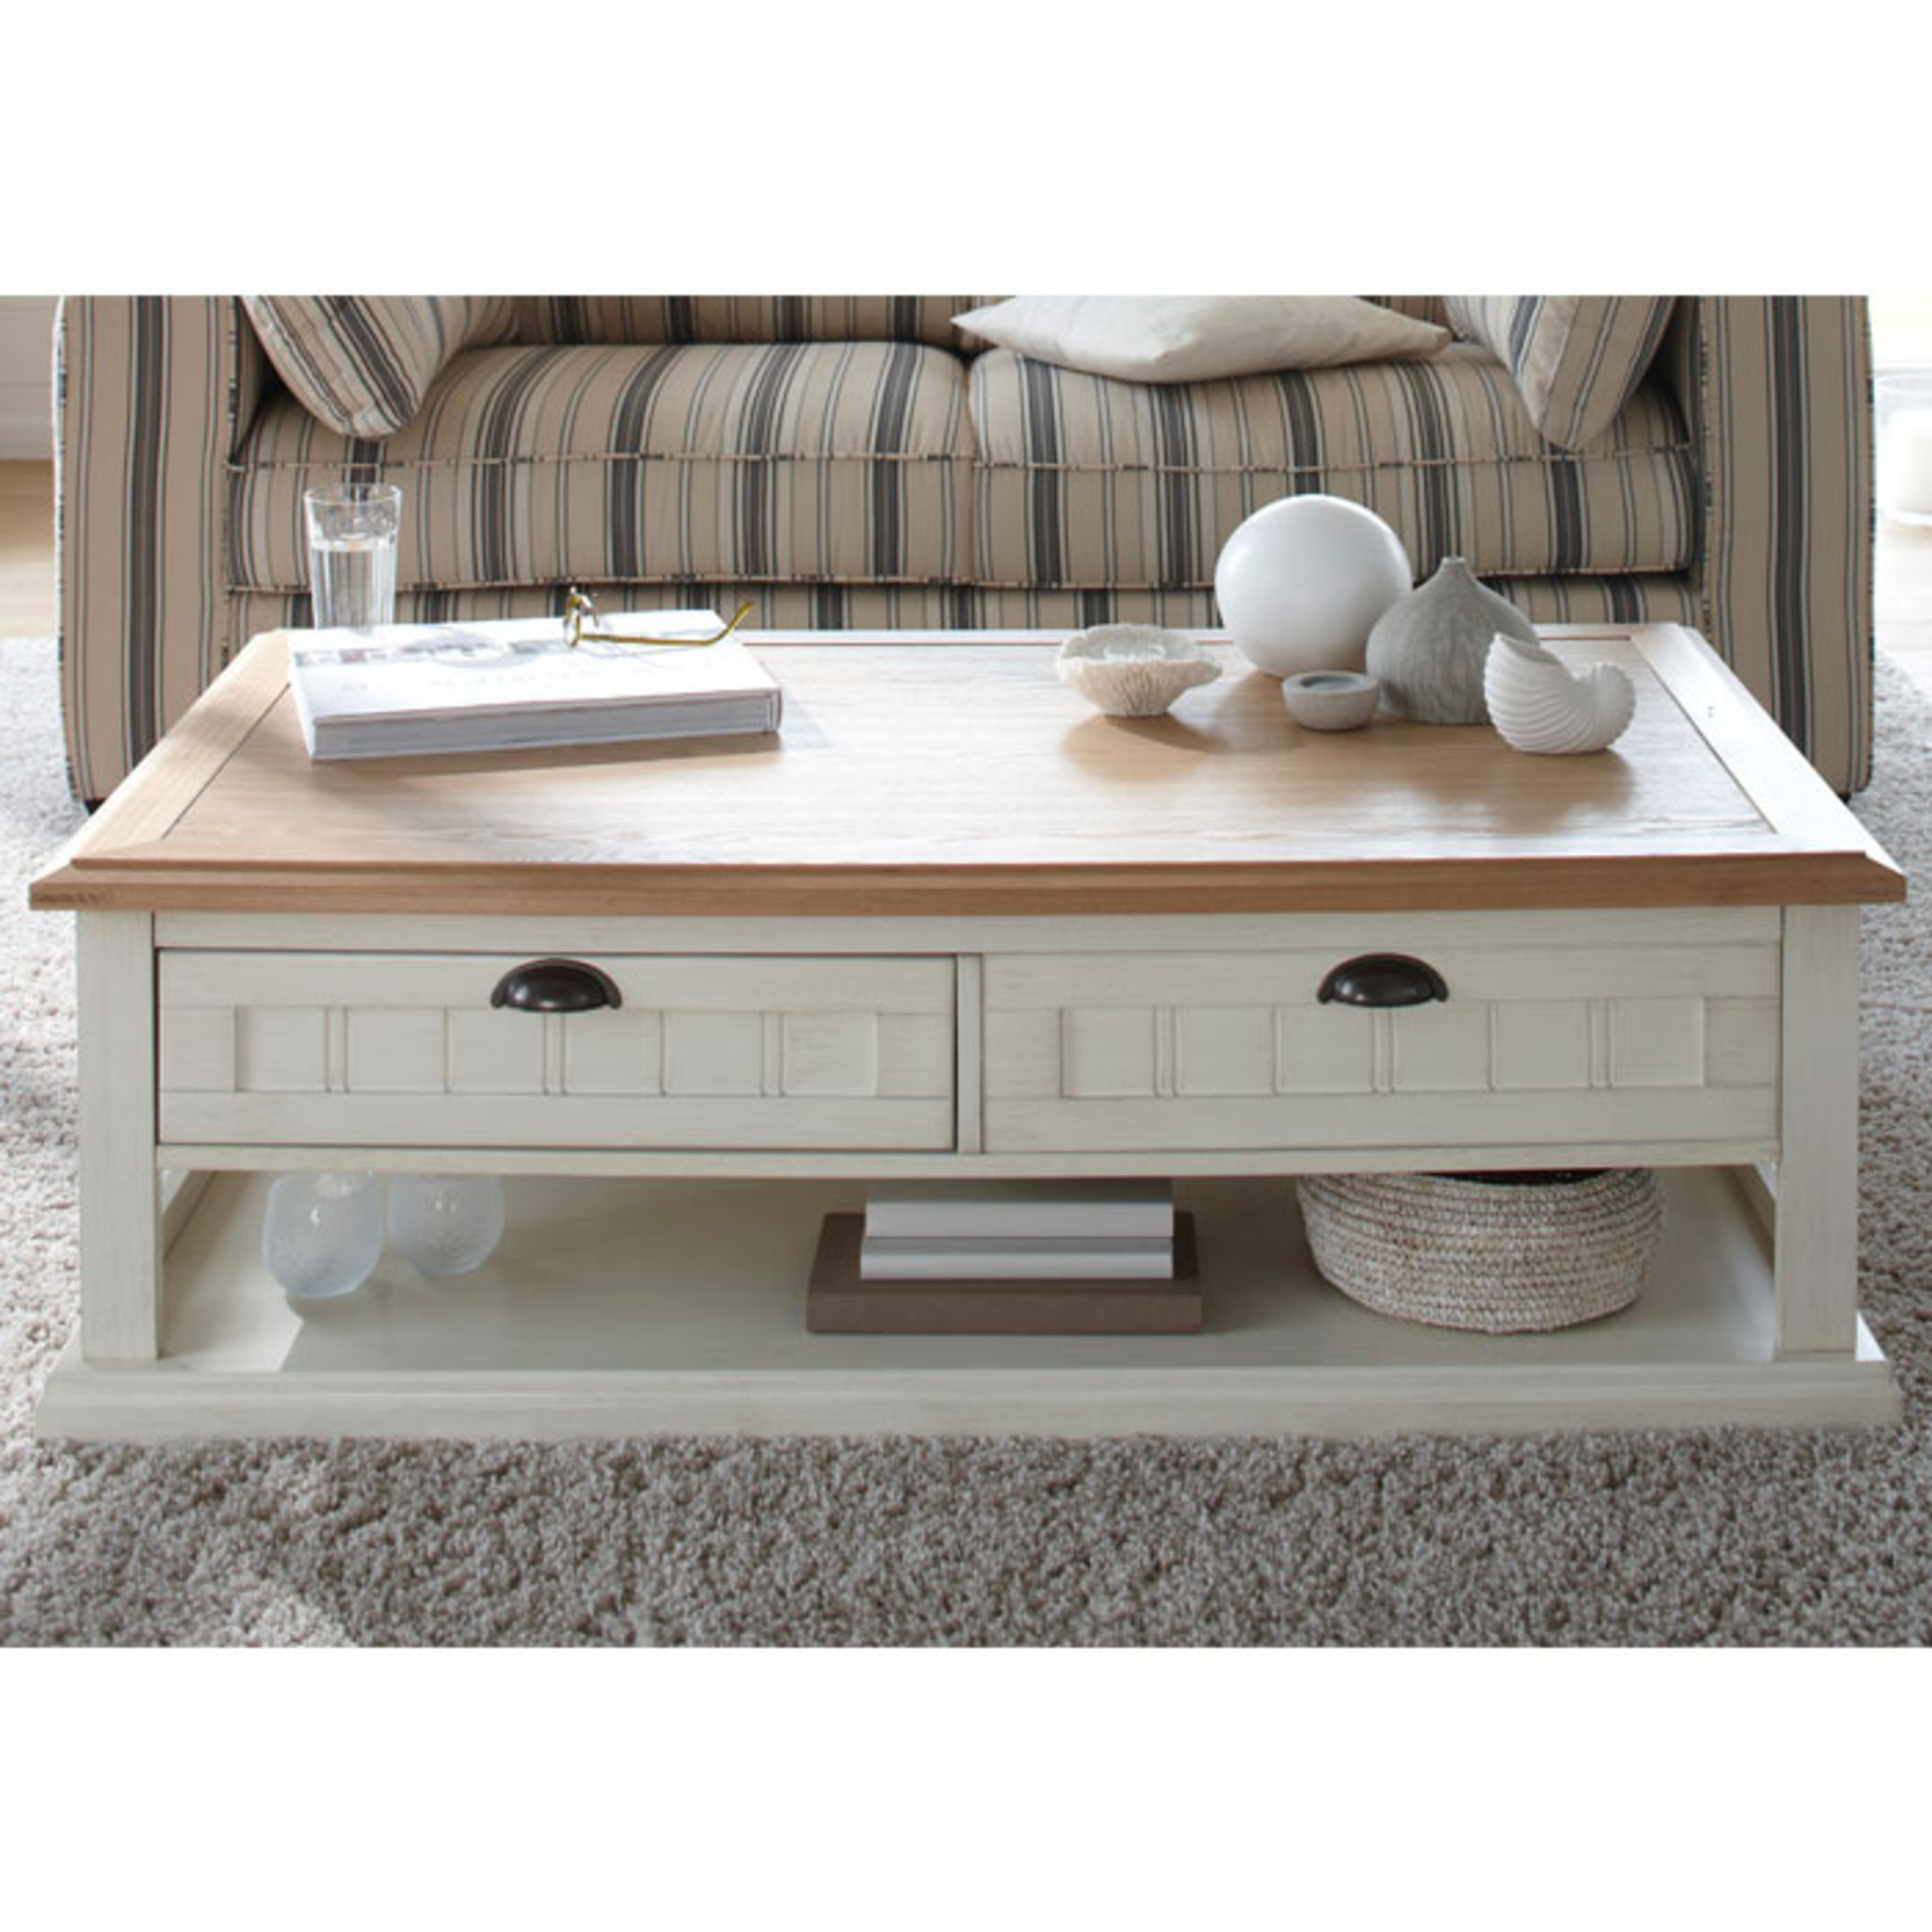 Table Basse Bois Blanc Table Basse Bois Blanc Vieilli Table De Lit